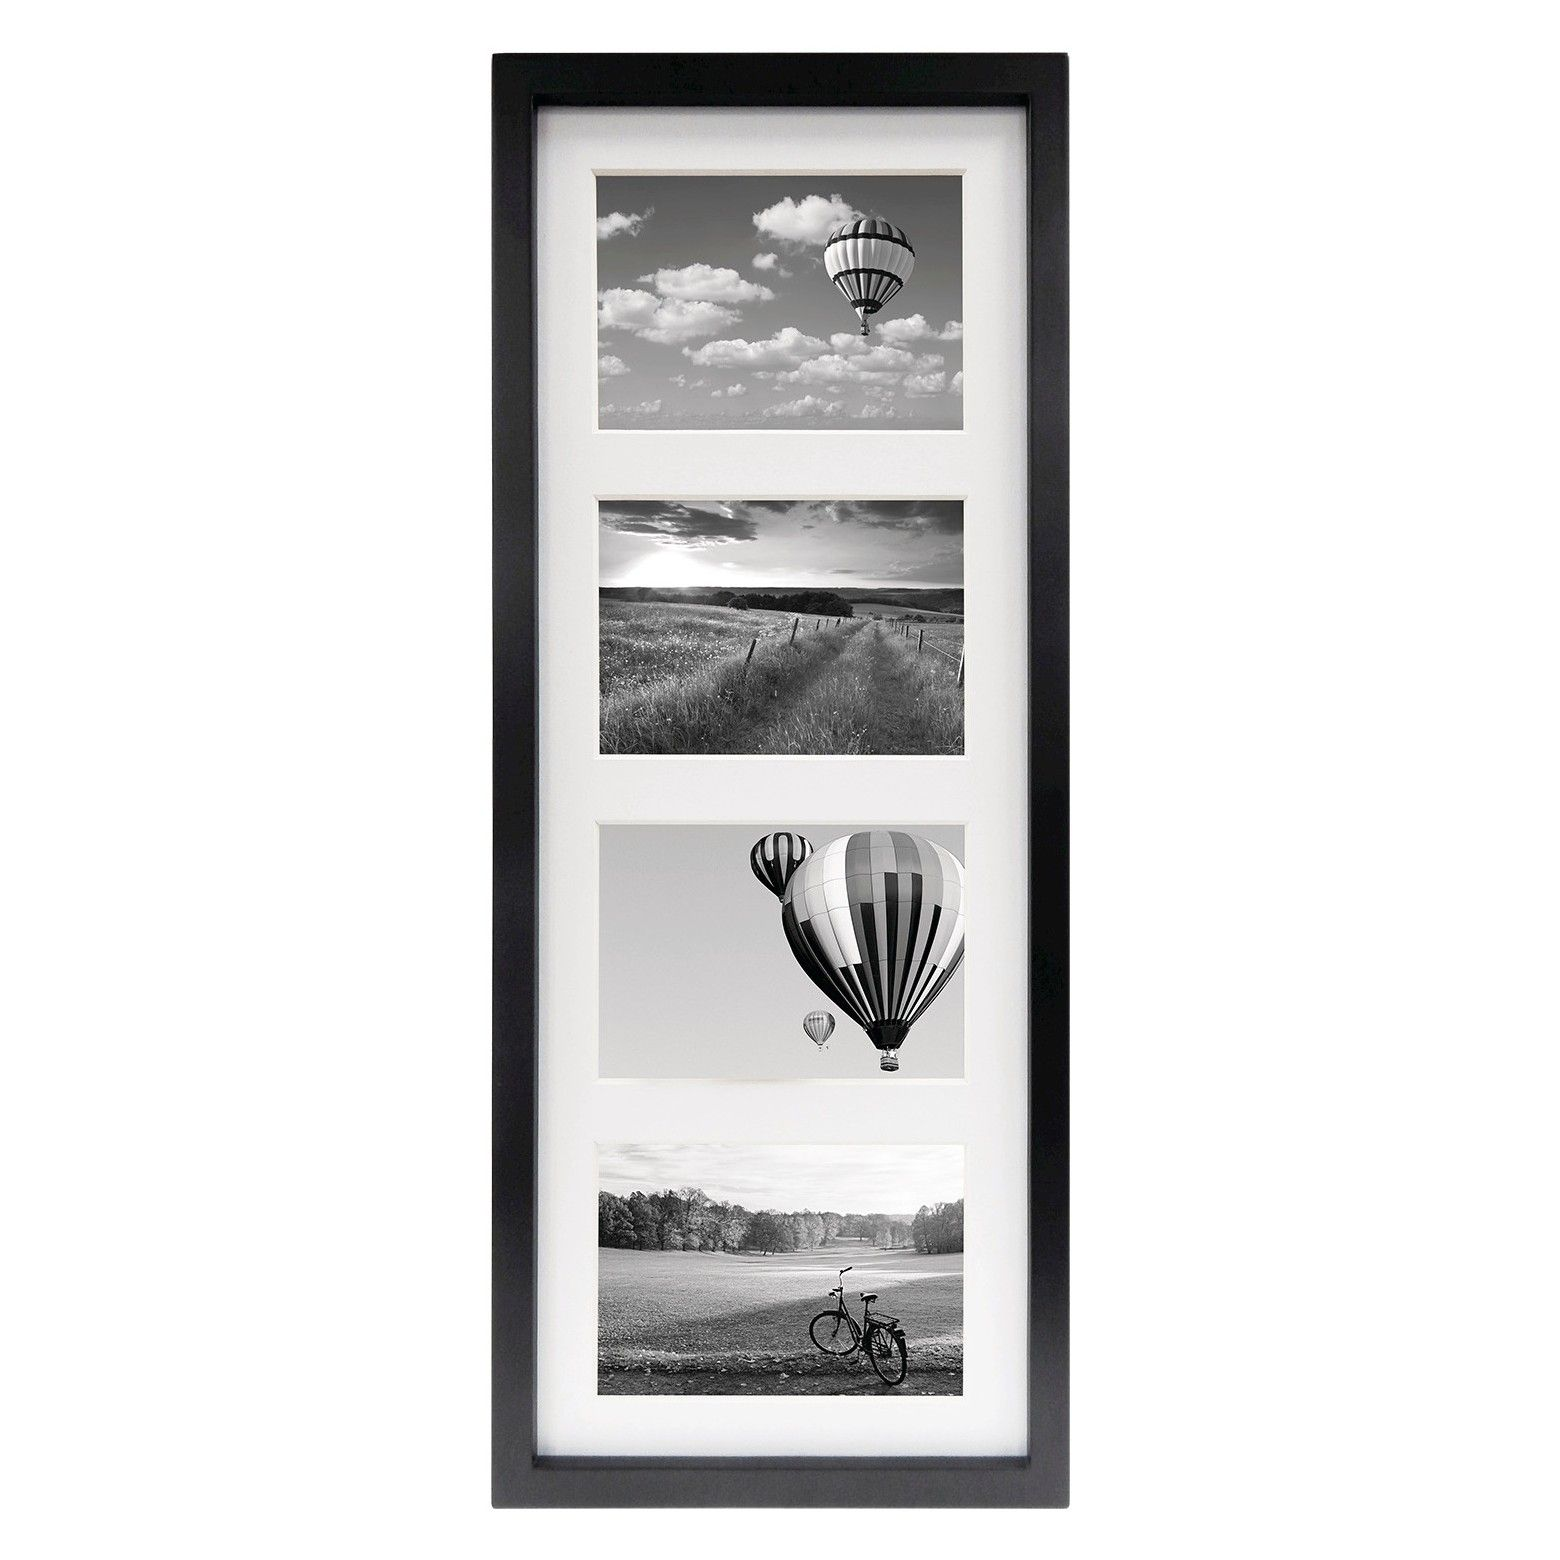 Thin Collage Wall Frame Made By Design Frames On Wall Photo Room Wall Collage